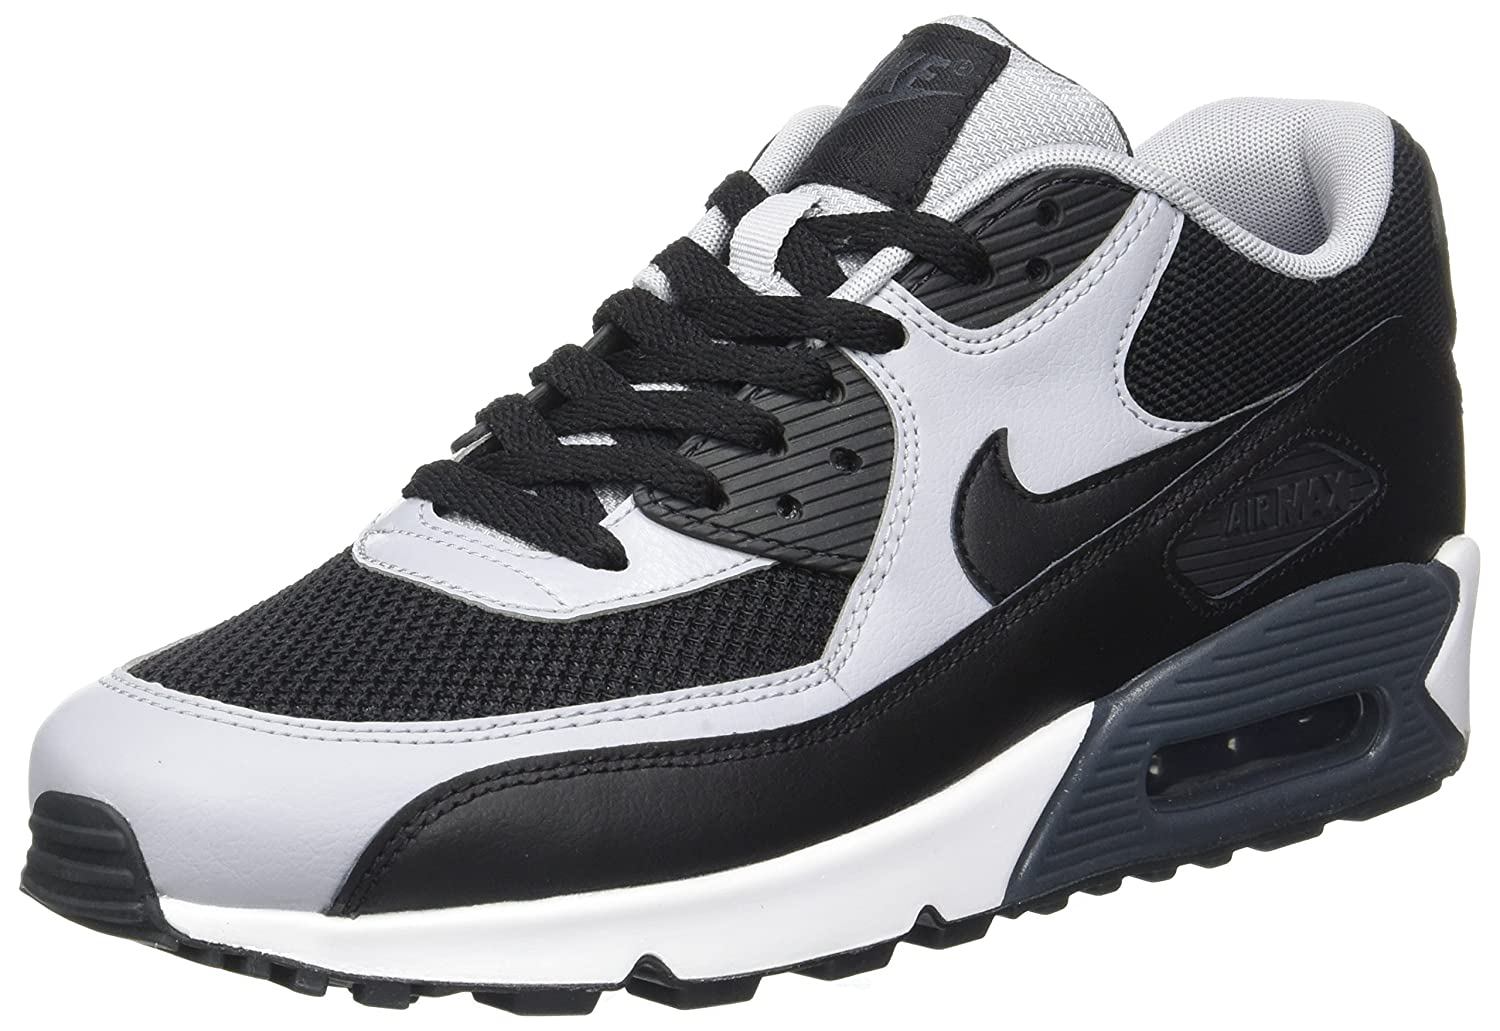 NIKE Men's Air Max 90 Essential Running Shoe B019STI258 7.5 D(M) US|Black/Wolf Grey/Anthracite